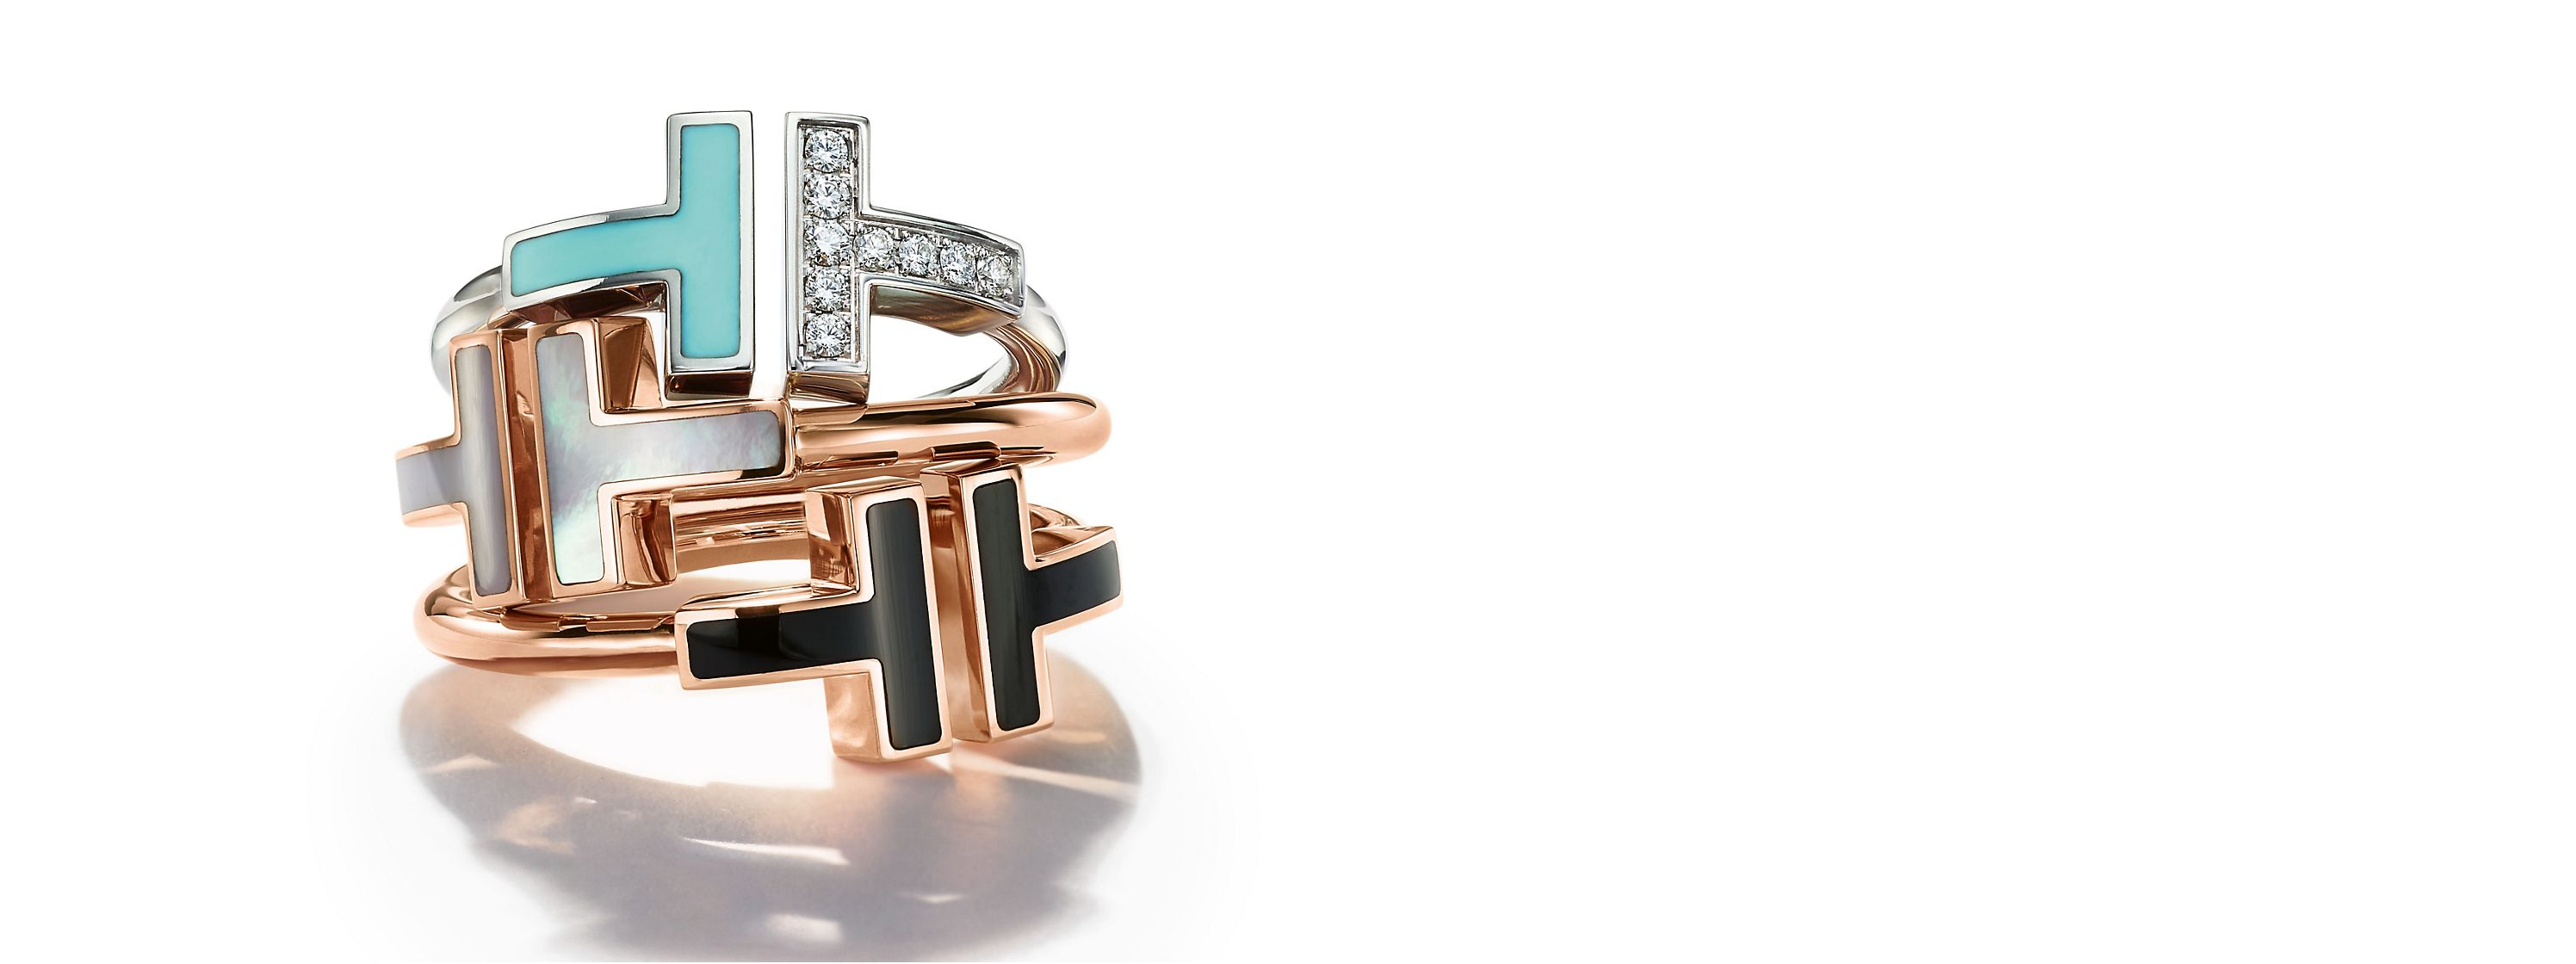 Shop the Tiffany T Collection